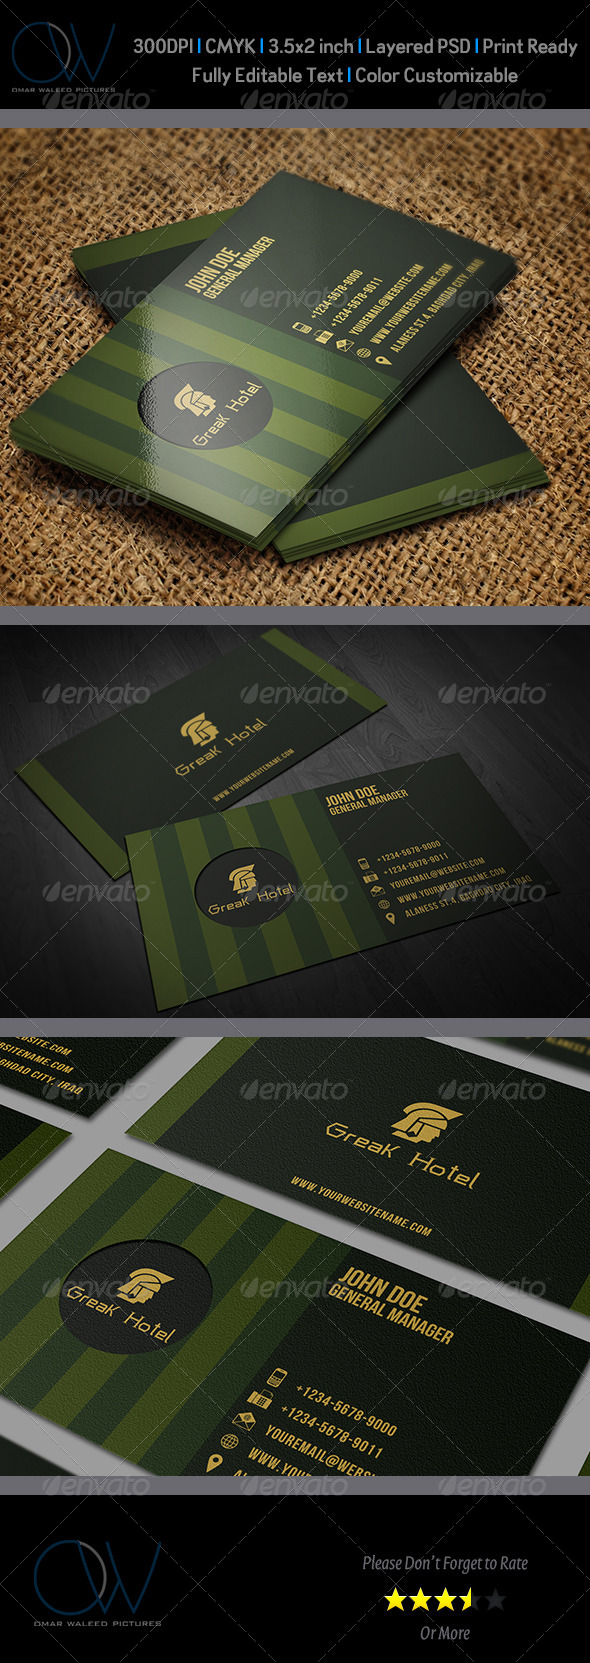 Hotel Business Card Template by OWPictures | GraphicRiver